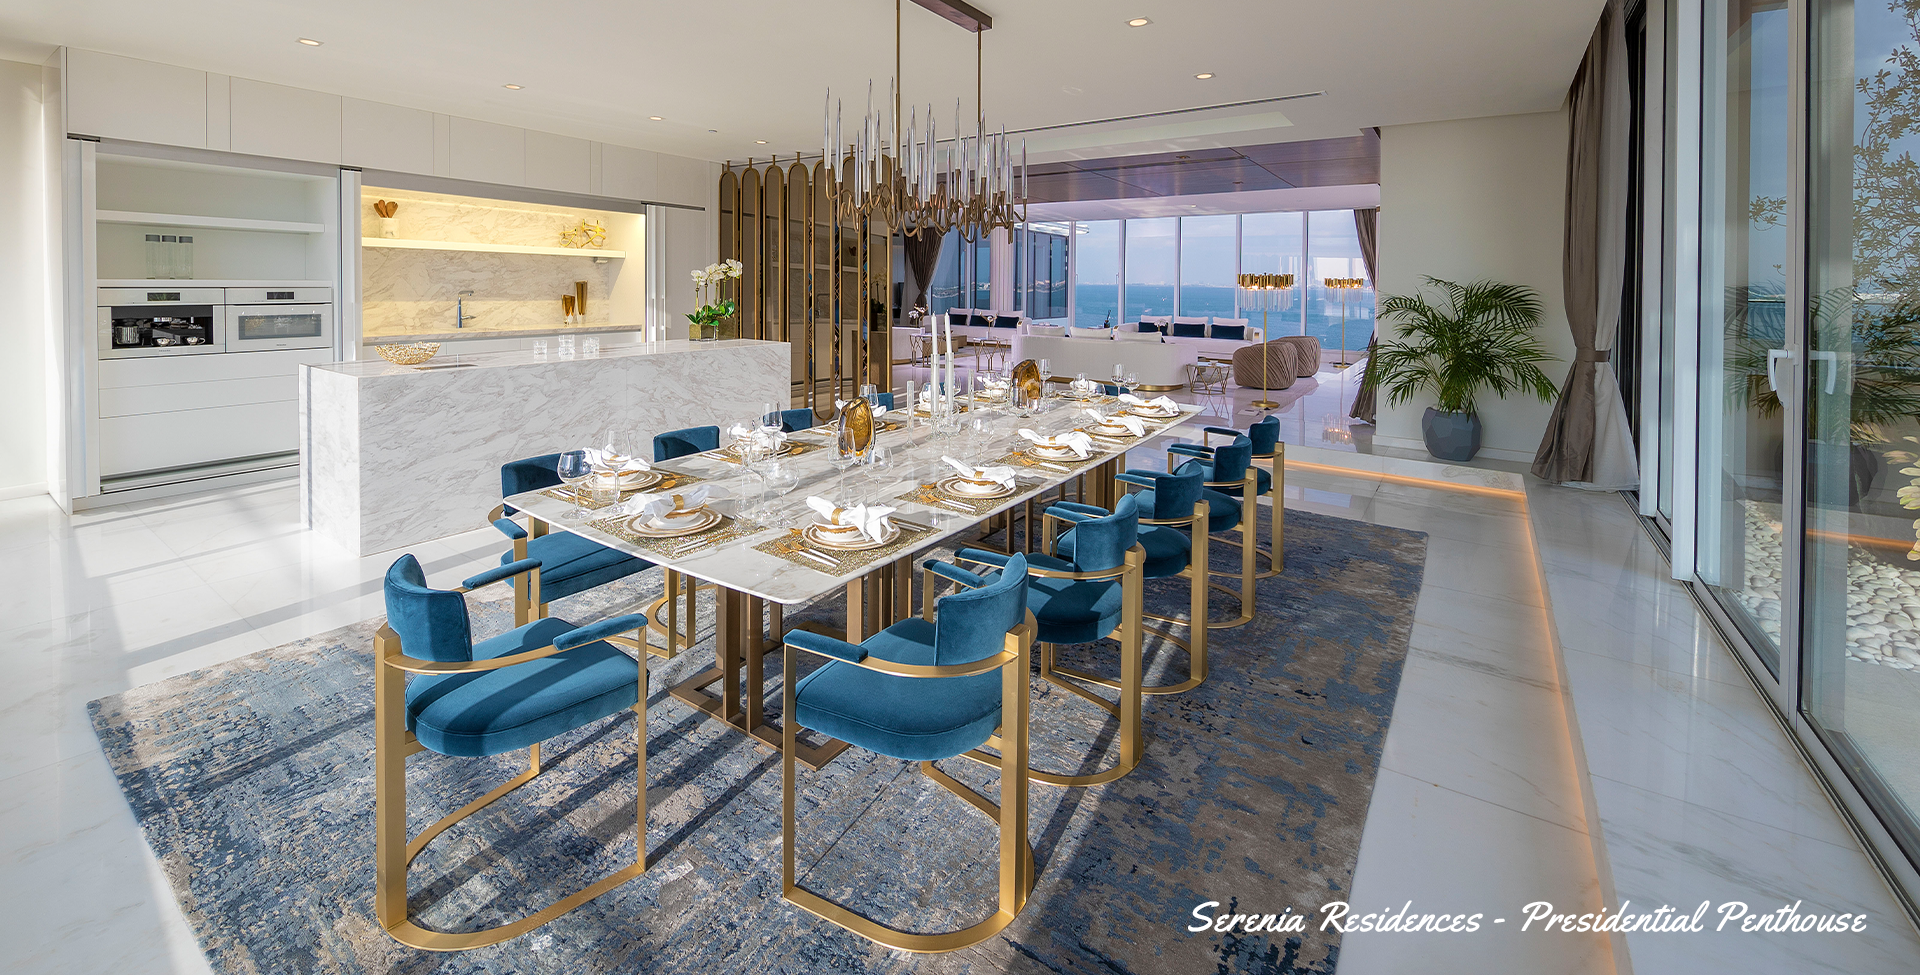 Serenia The Palm - The Presidential Penthouse